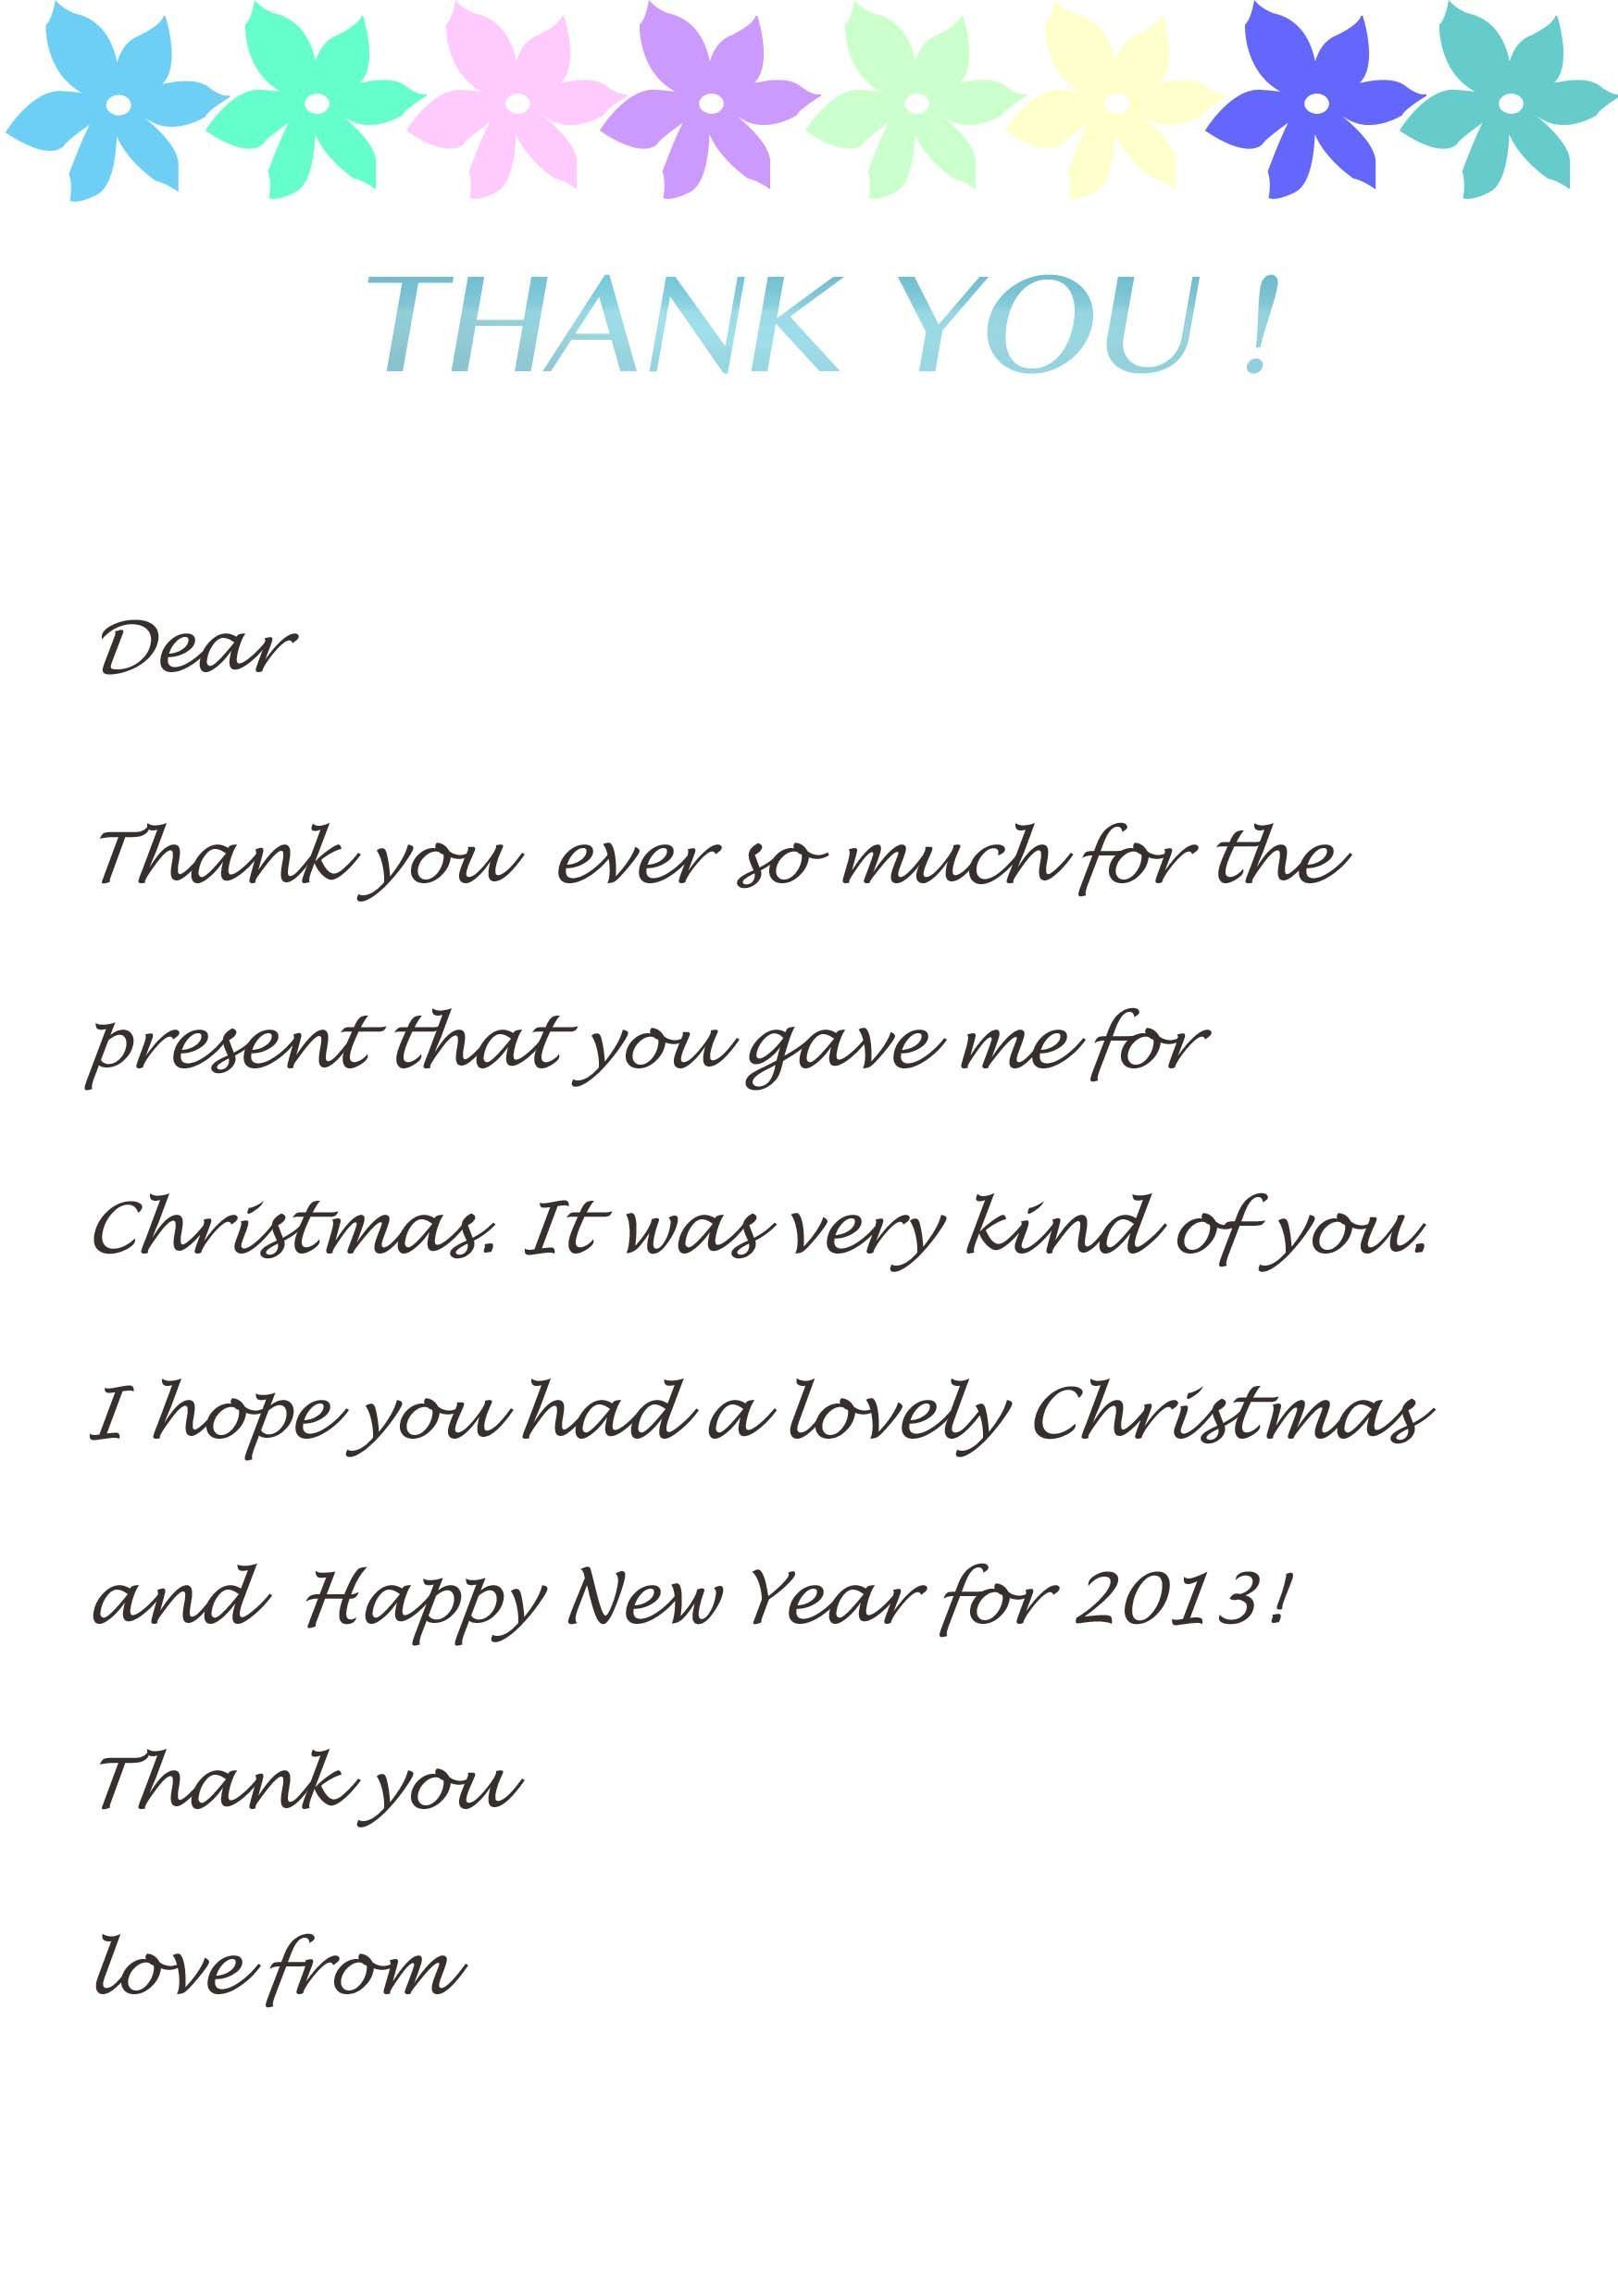 thank you letter template for kids christmas fun pinterest thank you letter christmas fun. Black Bedroom Furniture Sets. Home Design Ideas